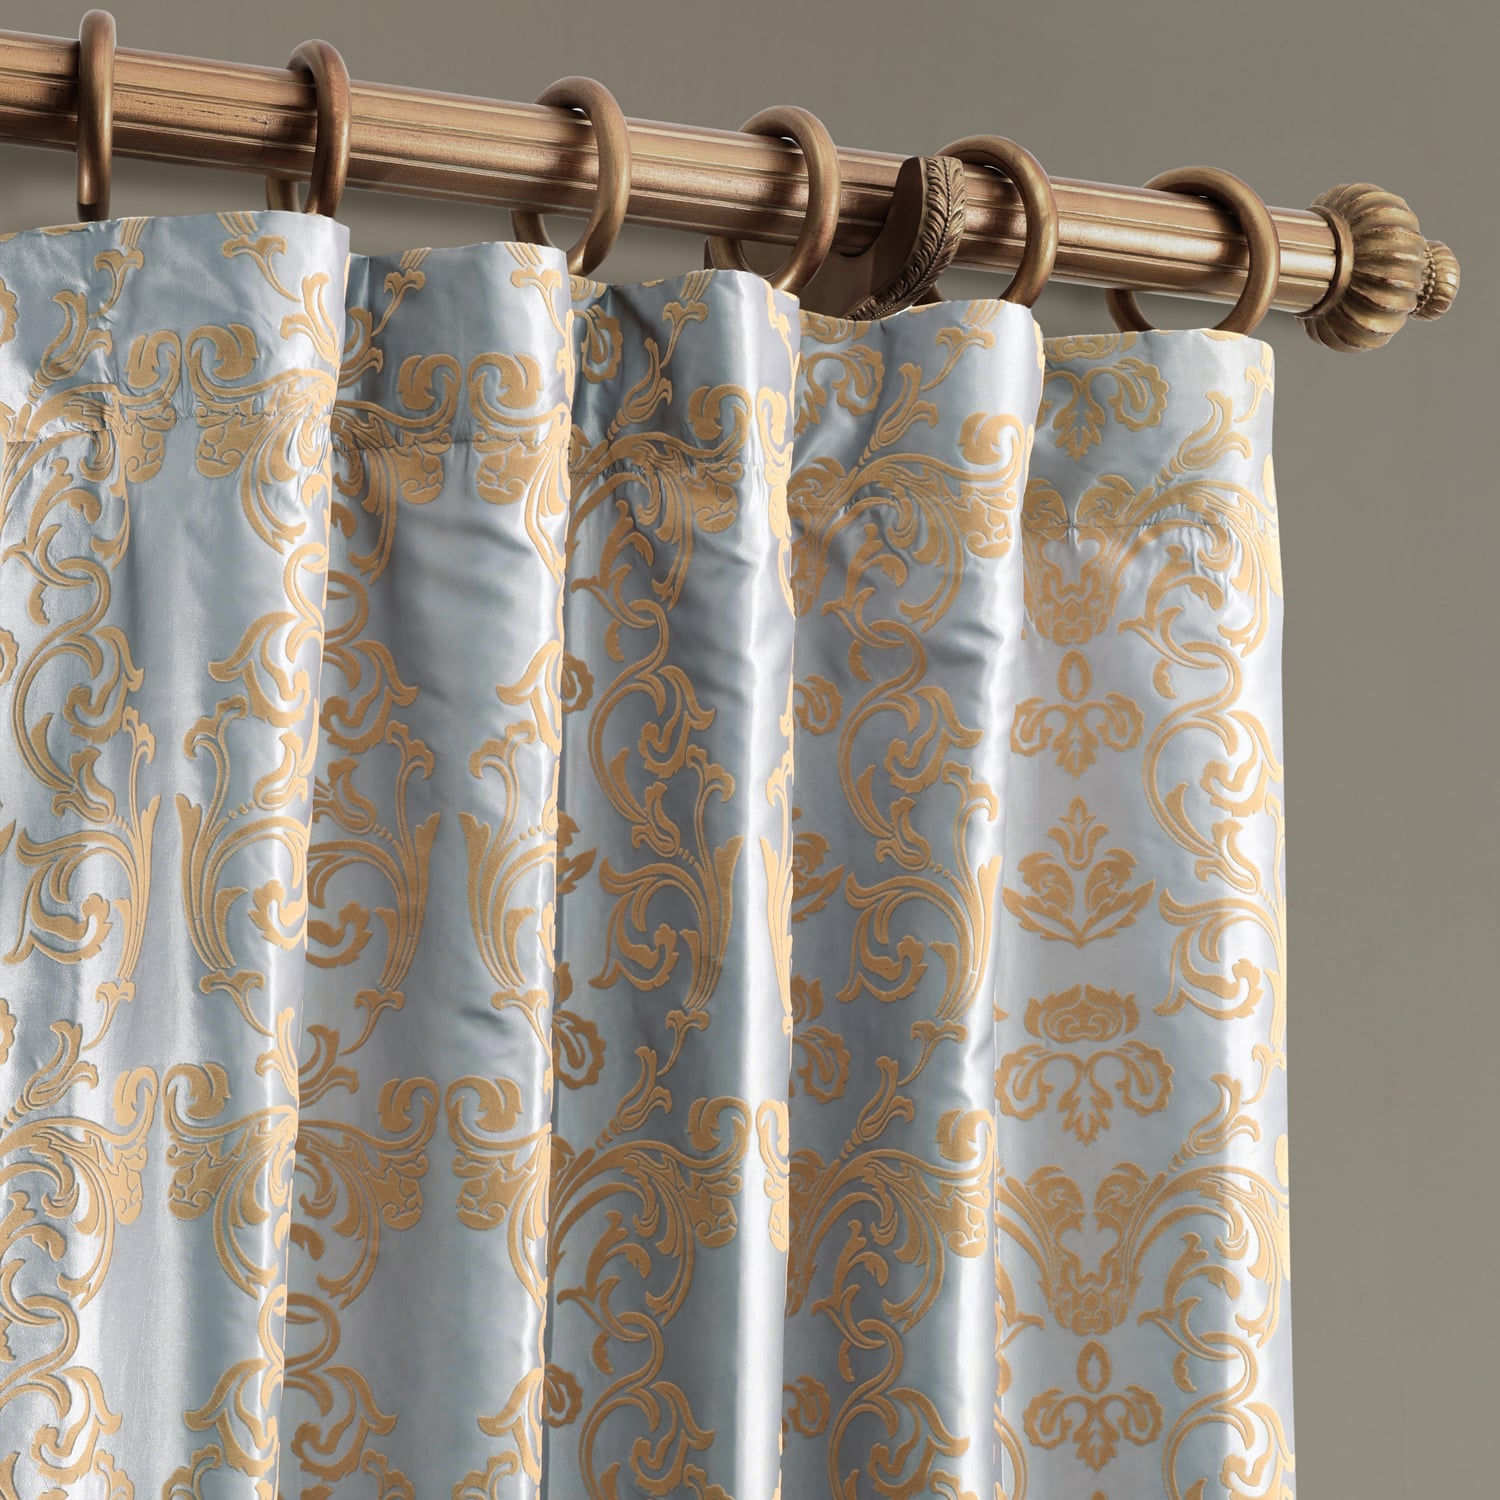 Firenze Silver Amp Gold Flocked Faux Silk Curtain